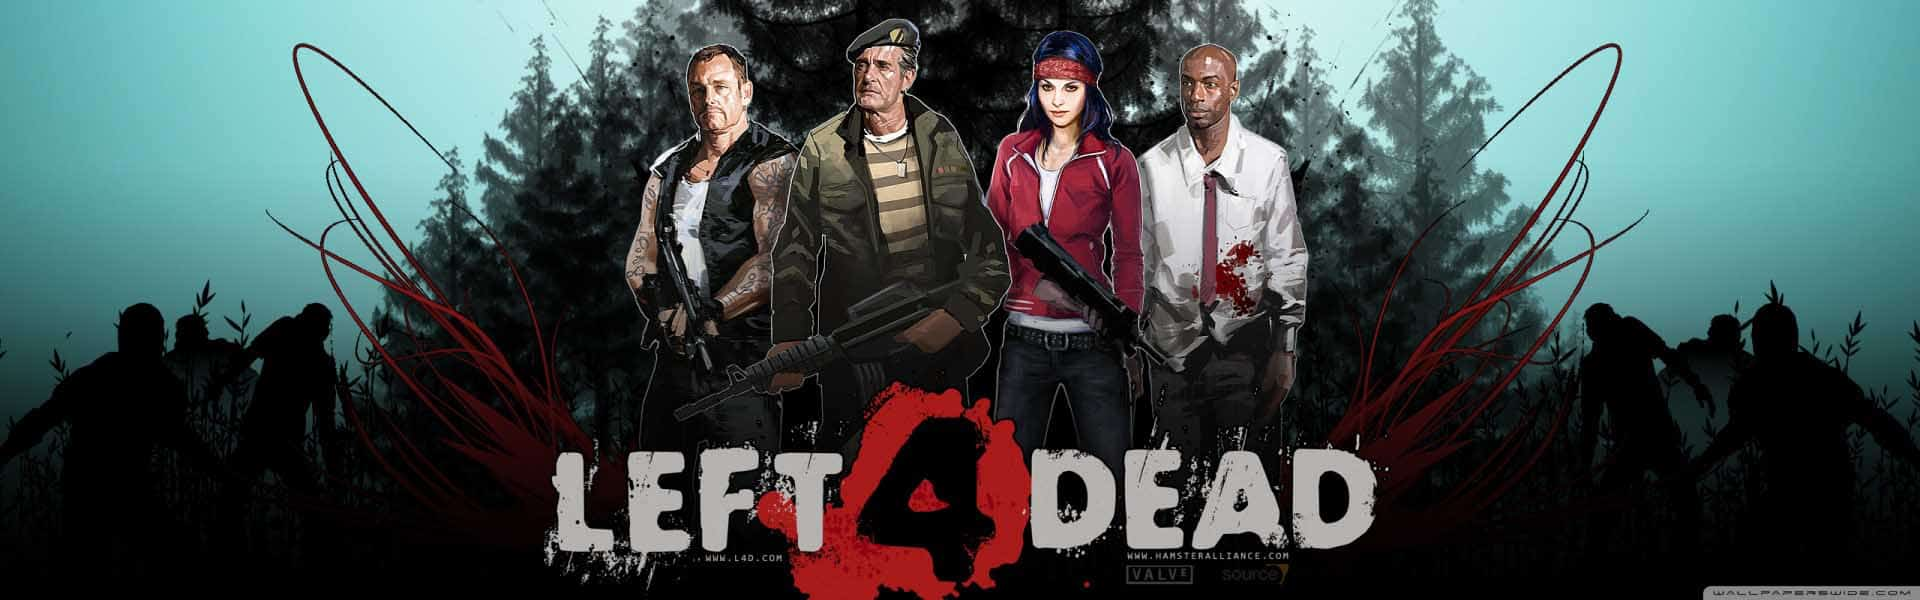 Left 4 Dead 3 Release Date, Trailer, News and Rumors